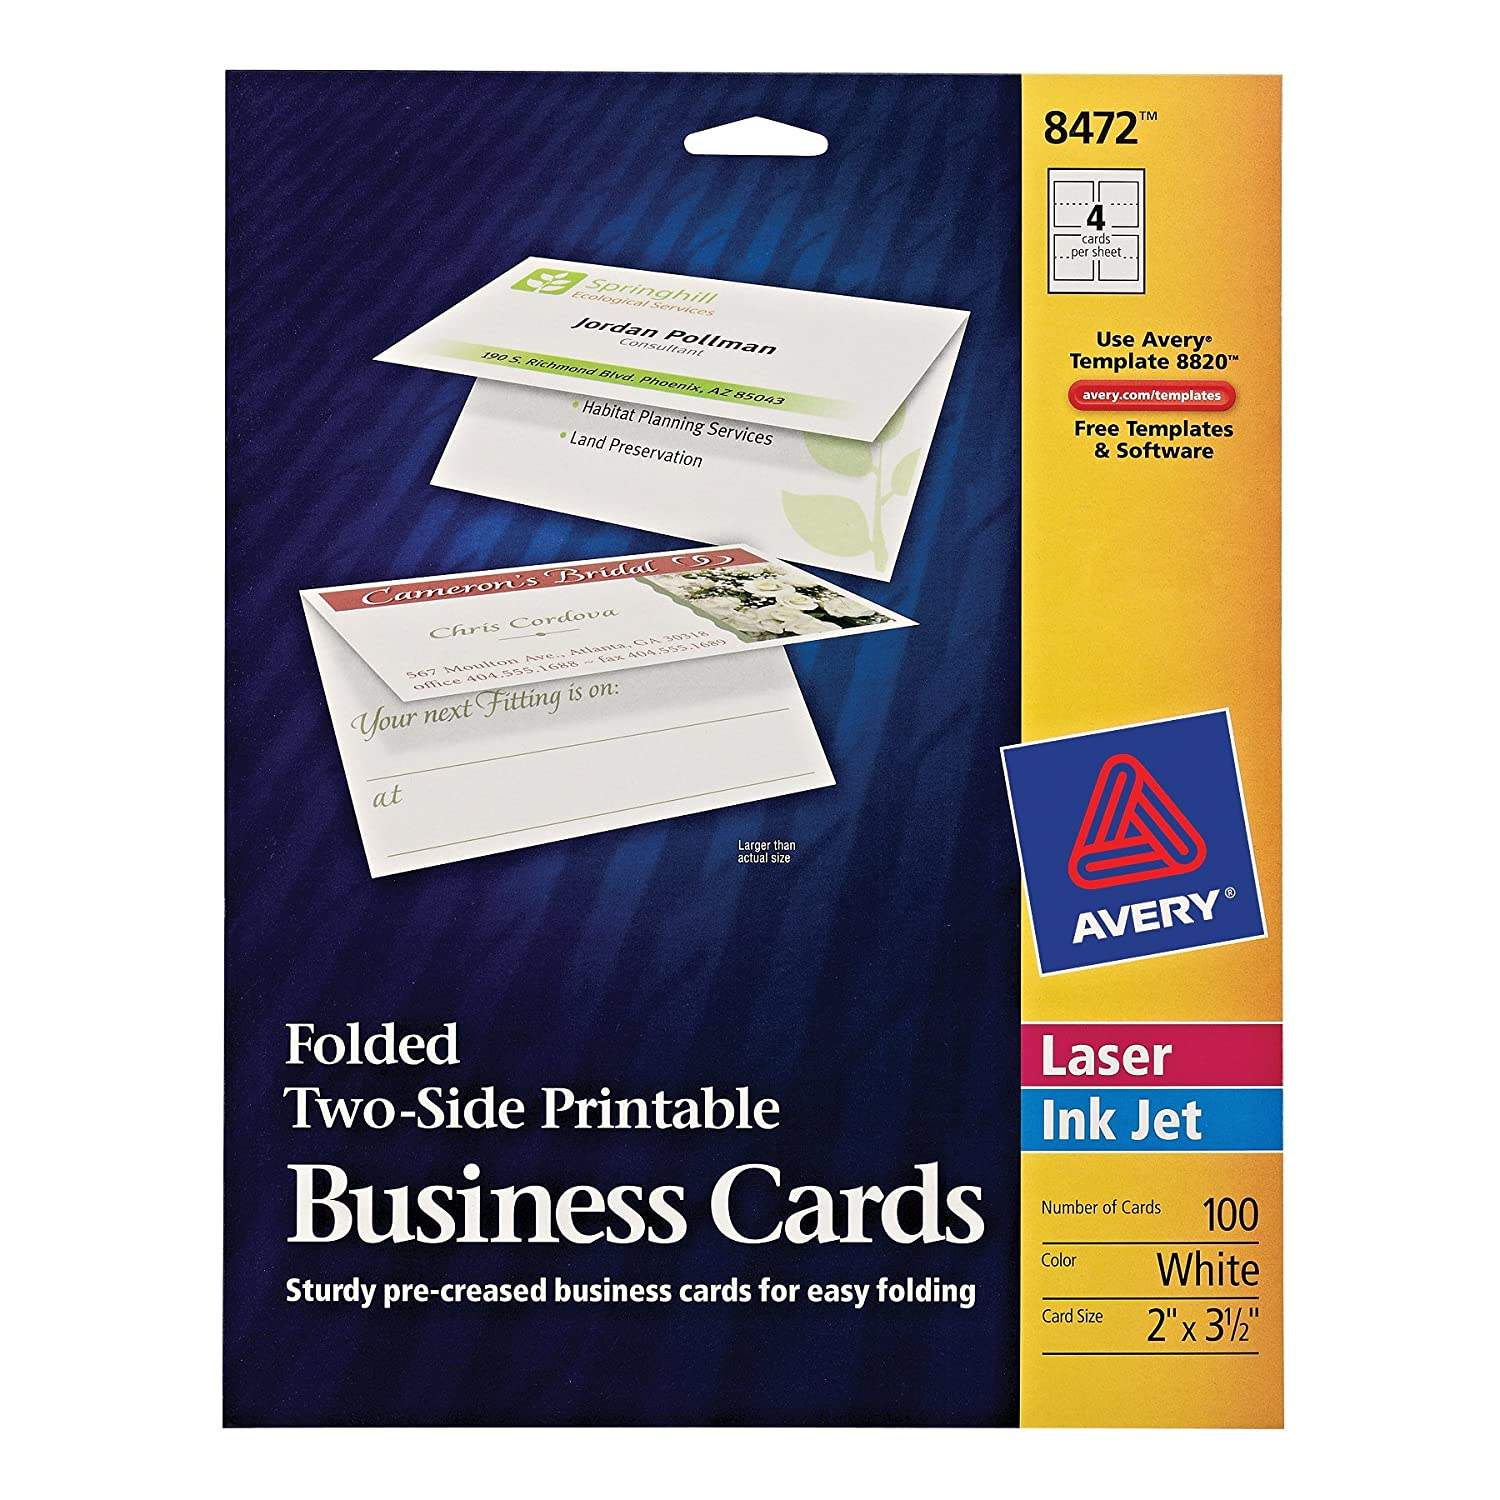 Amazon avery folded two side printable business cards laser amazon avery folded two side printable business cards laserinkjet white uncoated pack of 100 8472 business card stock office products fbccfo Images